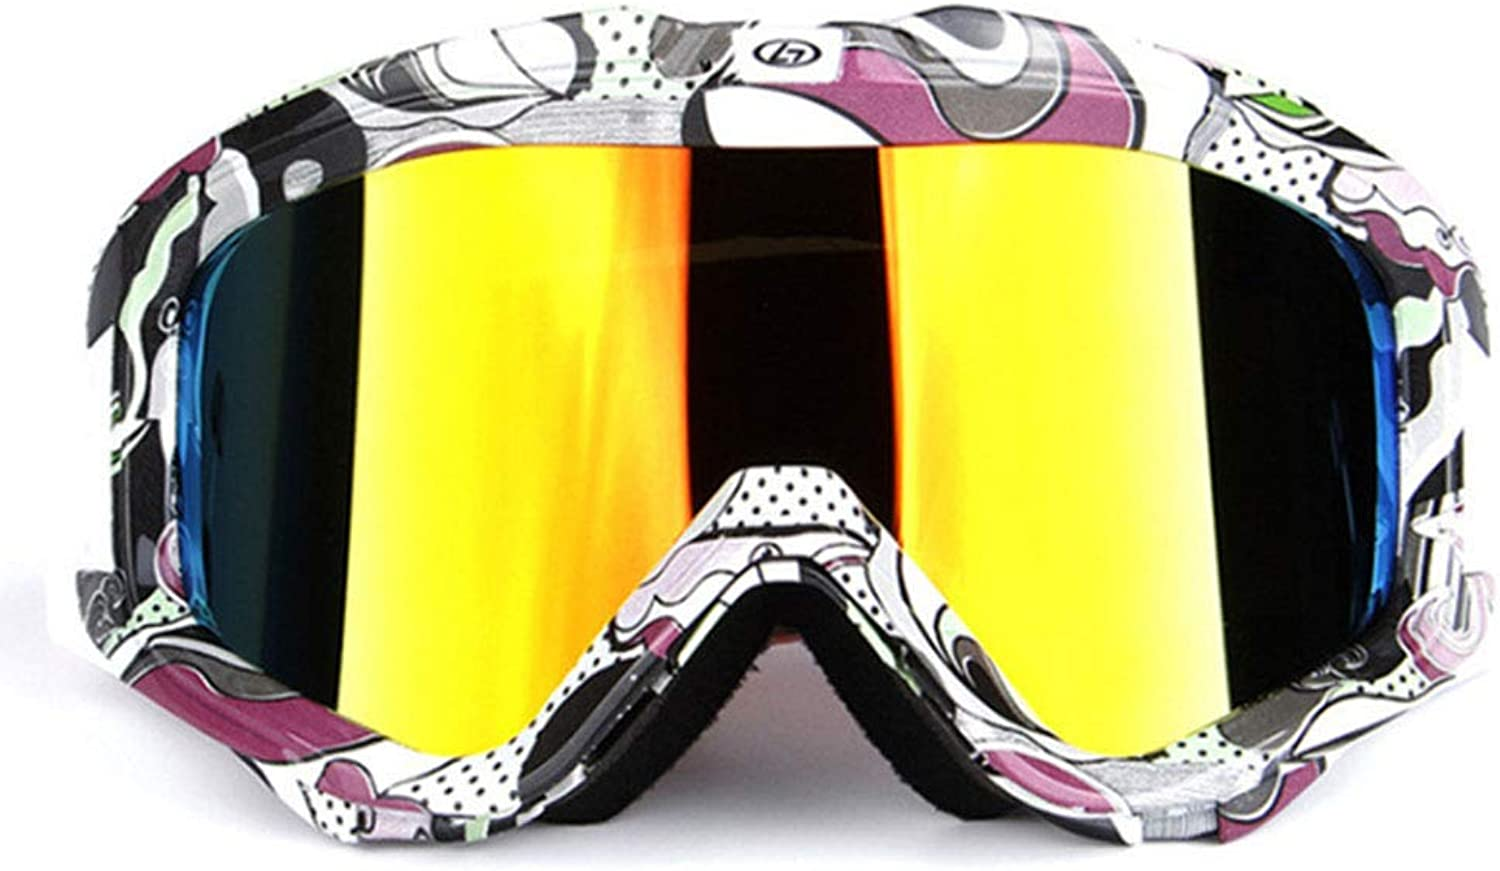 Ski Goggles100% UV Predection, Adult DoubleLayer AntiFog Men and Women Large Spherical ski Glasses Equipment Suitable for Outdoor Skiing,G